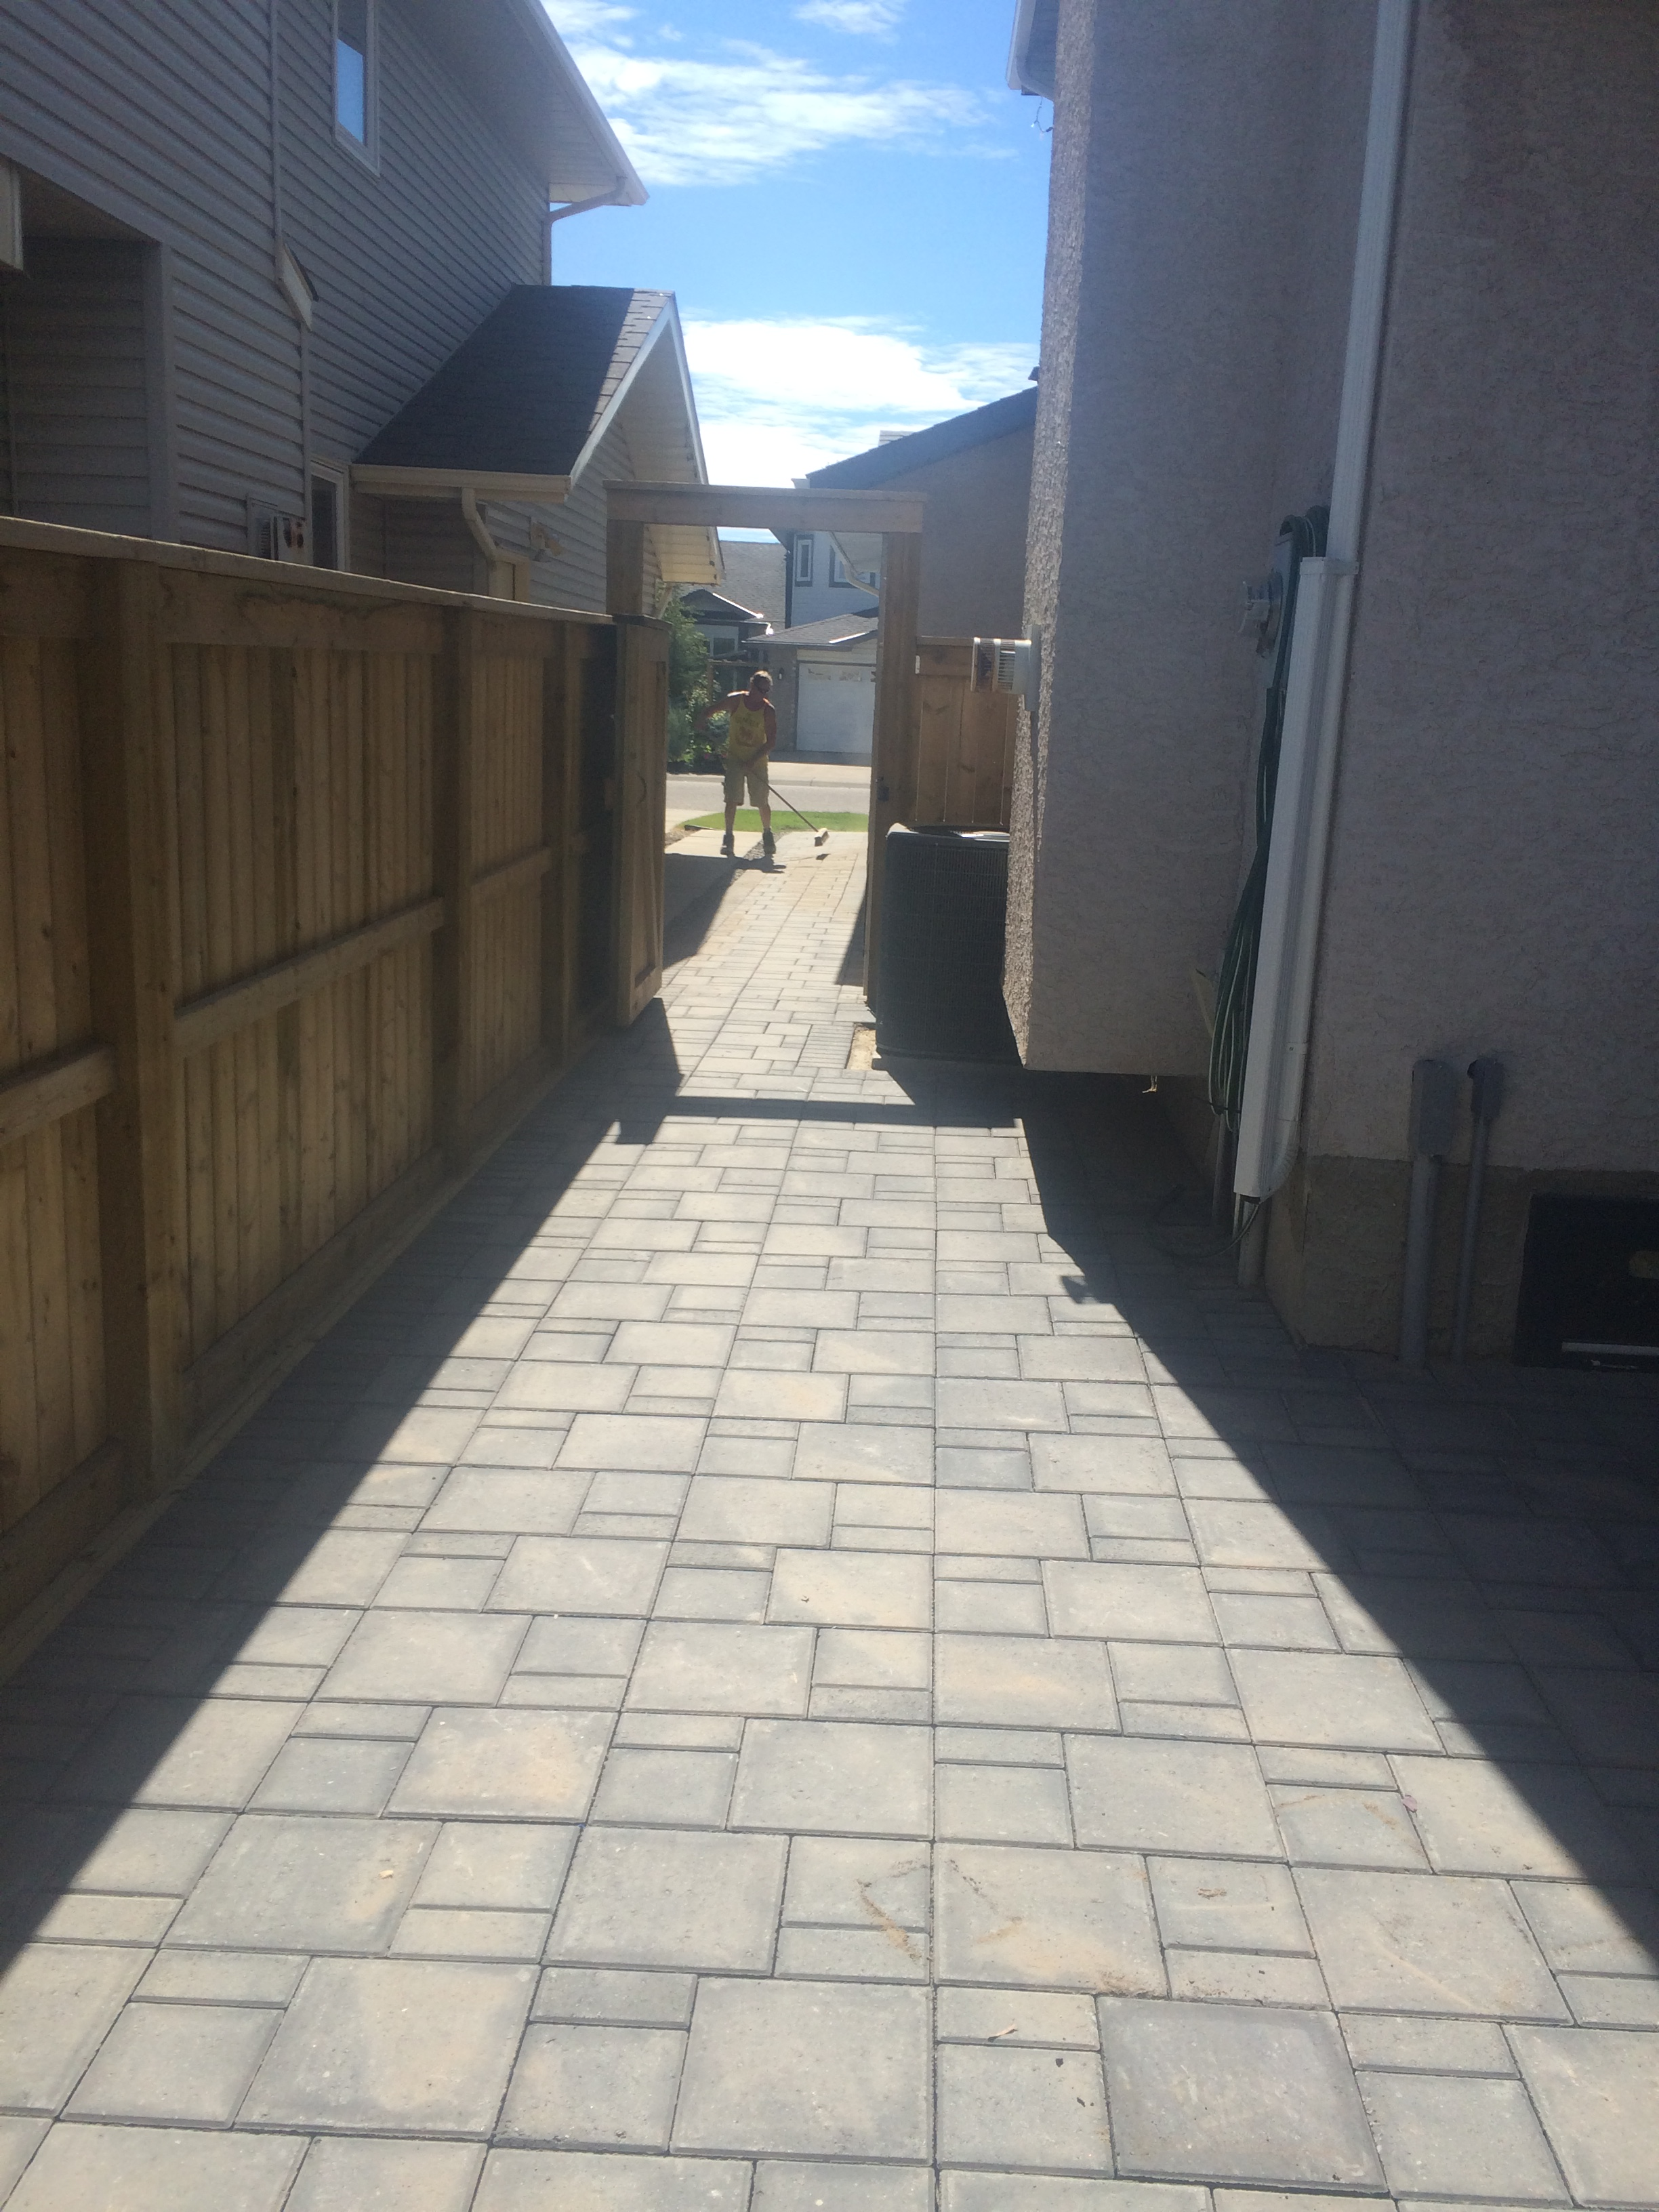 Paving stone walkway and patio.